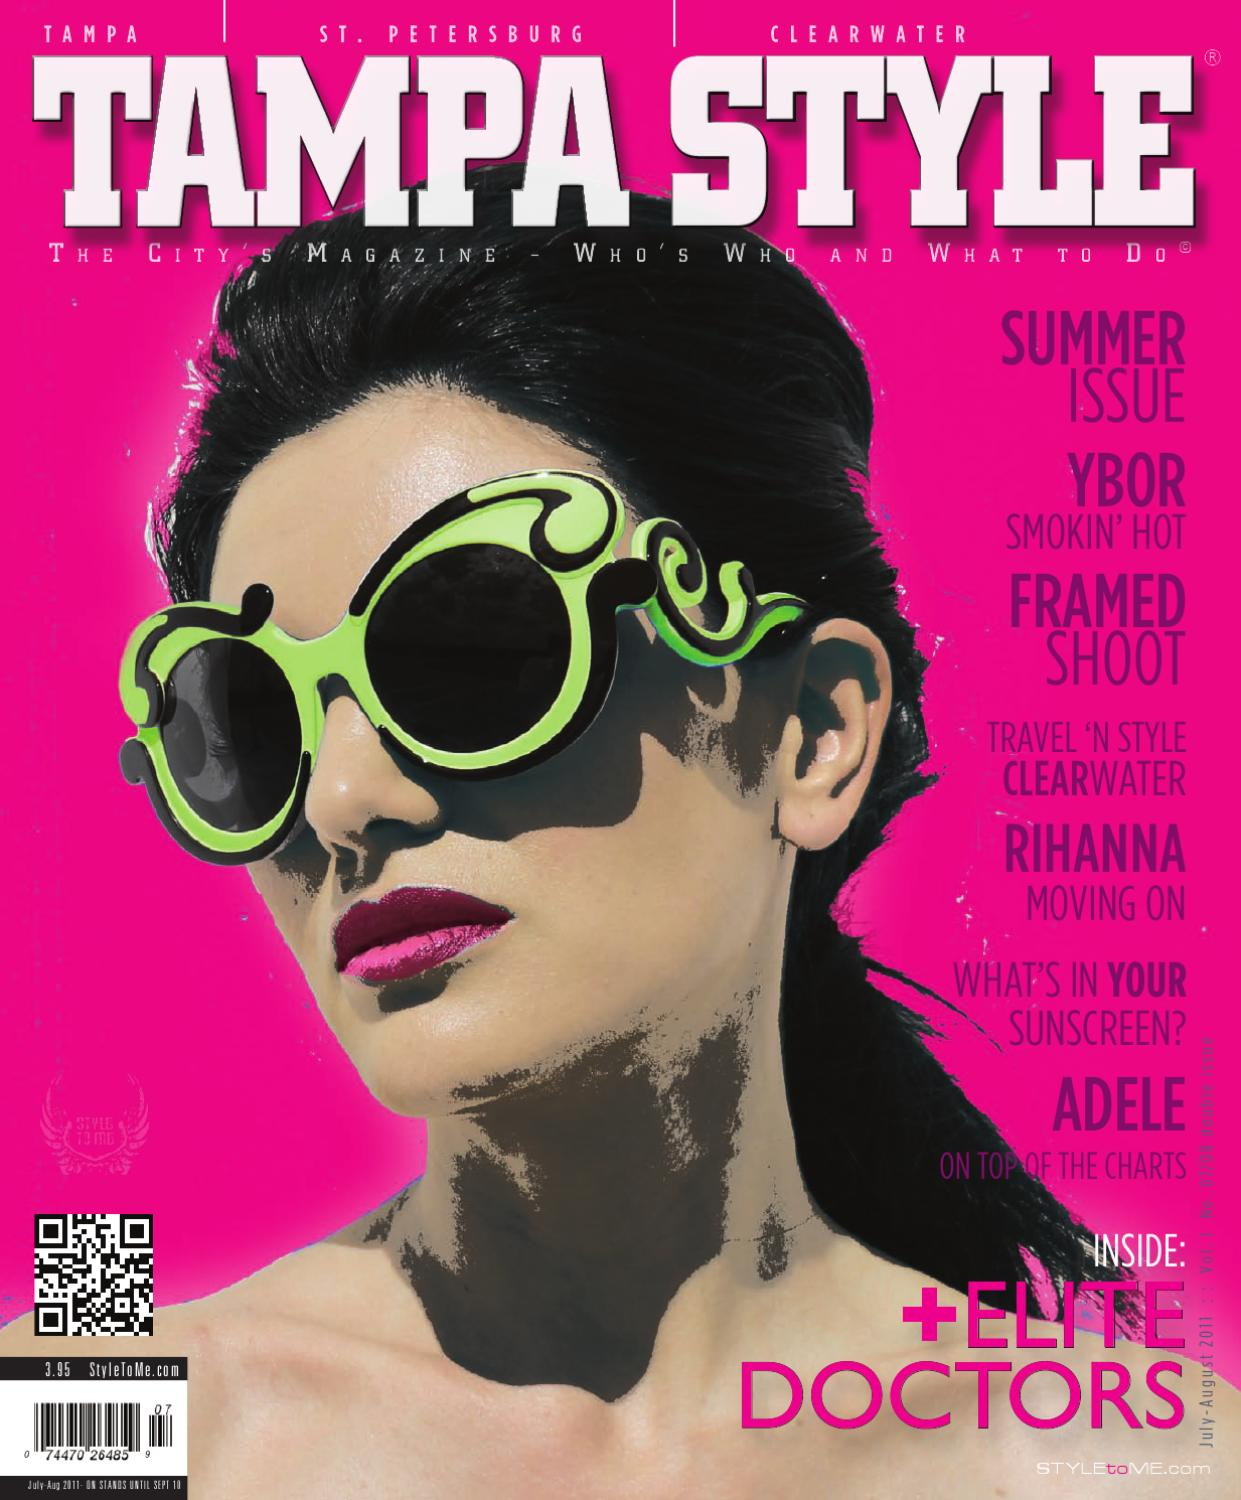 Tampa Style Magazine July/August 2011 by styletome - issuu